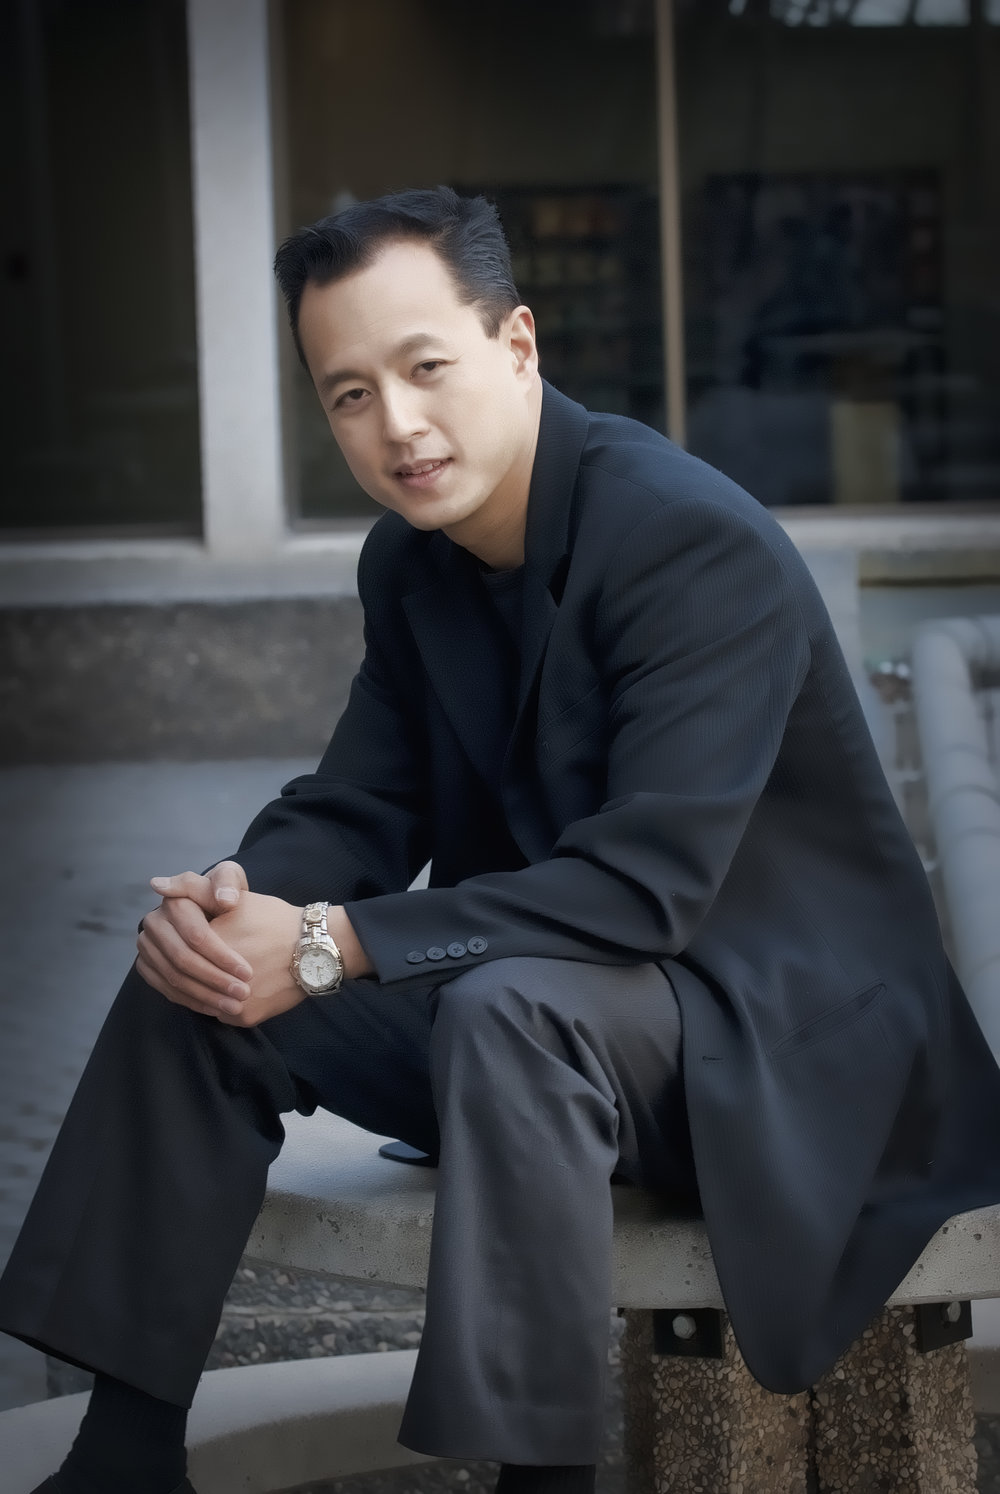 Composer - Vincent Ho